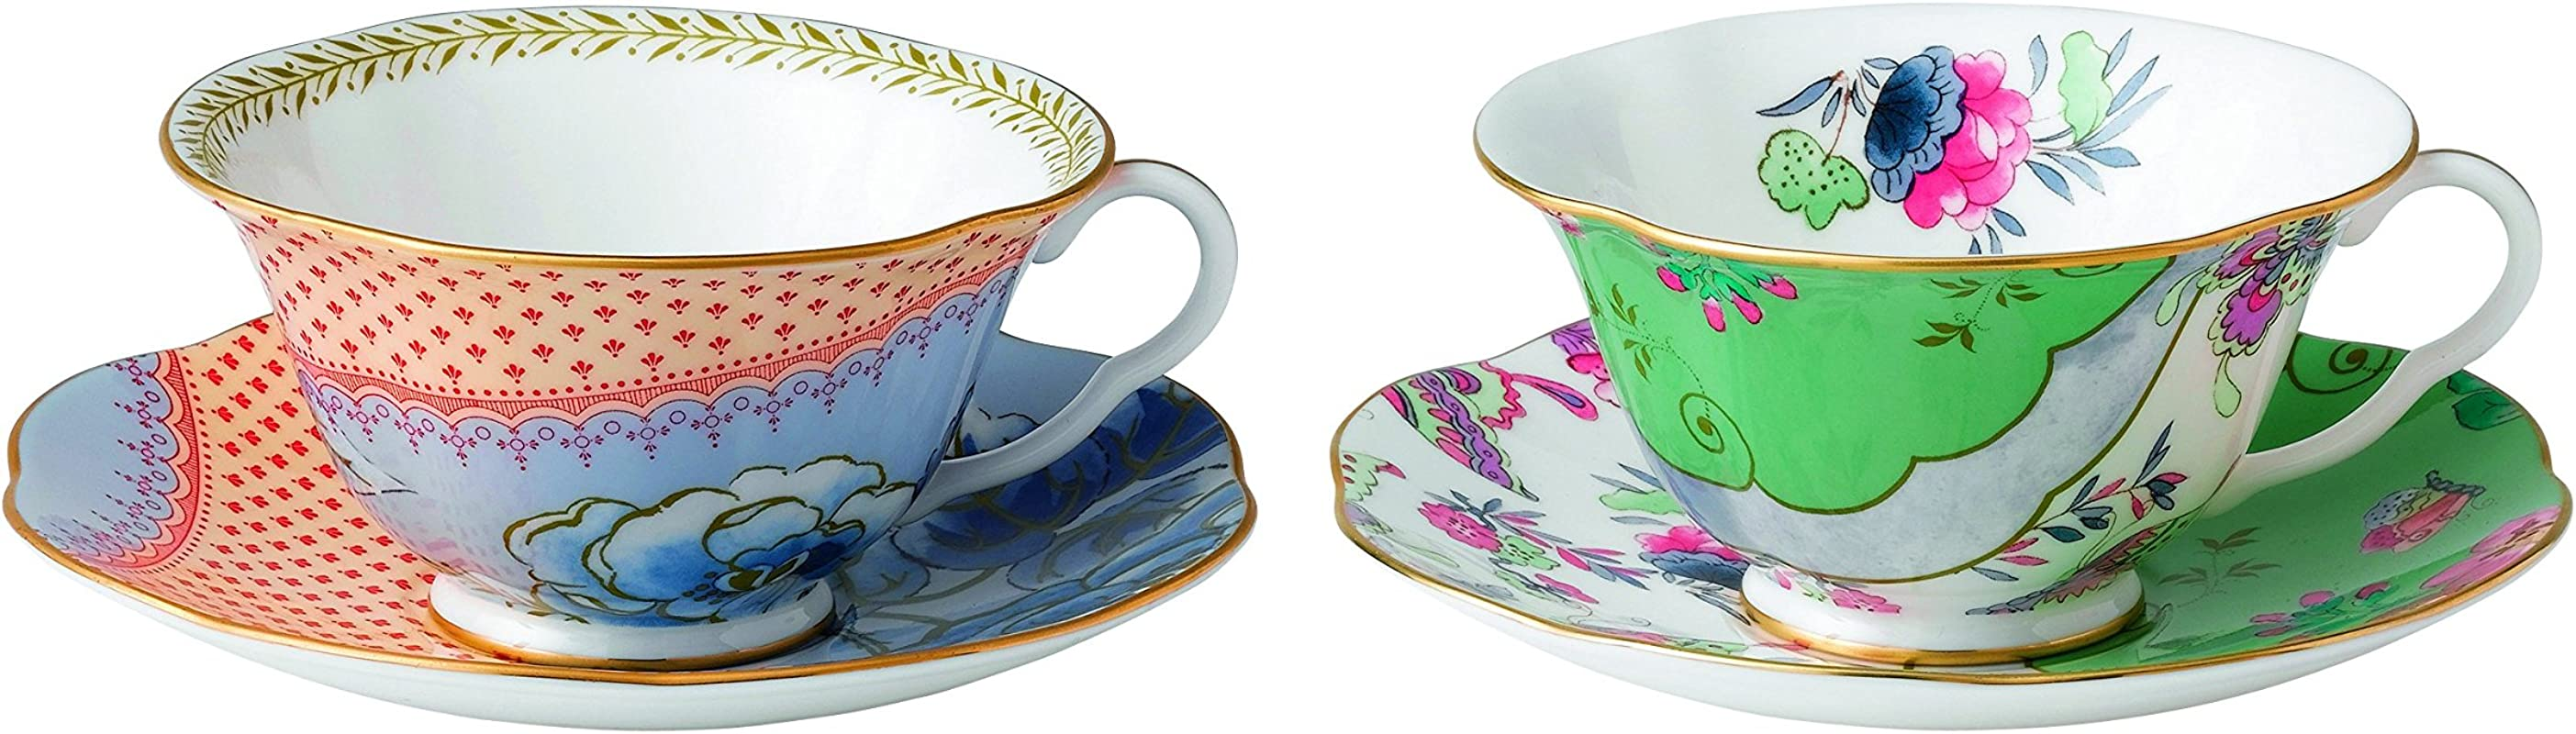 Wedgwood 40003931 Butterfly Bloom Tea Story Teacup And Saucer Blue Peony And Posy Set Of 2